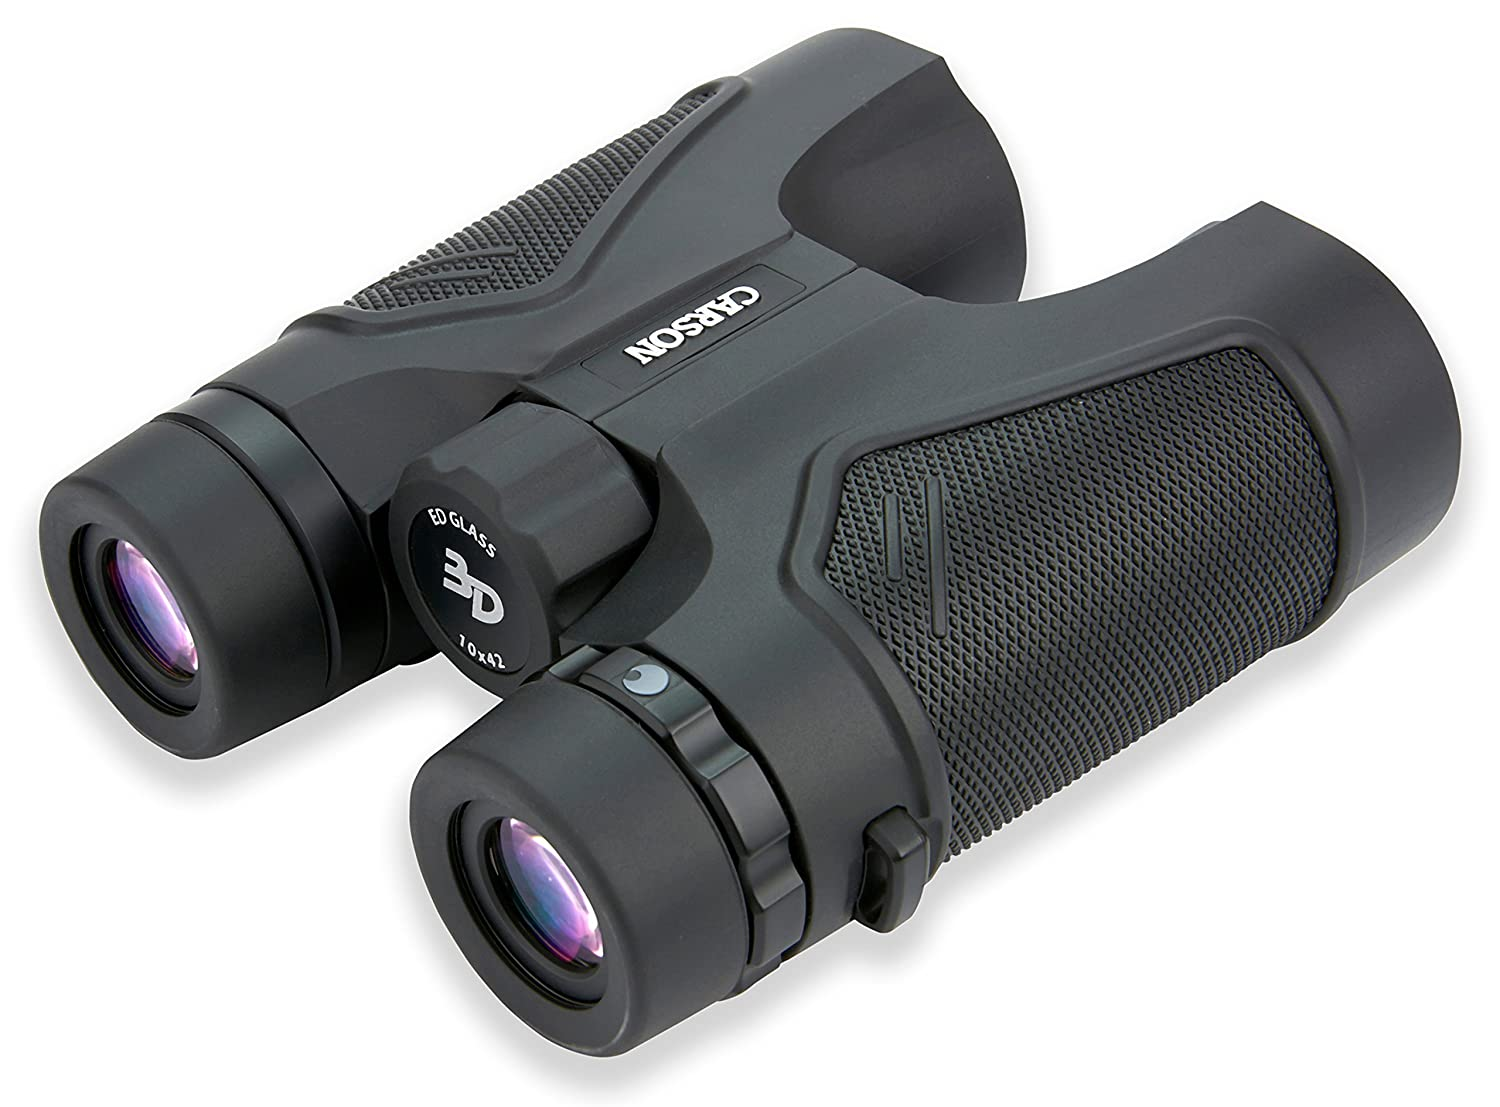 Amazon.com: Carson 3D Series High Definition Binoculars with ED Glass,  10x42mm, Black: Sports & Outdoors